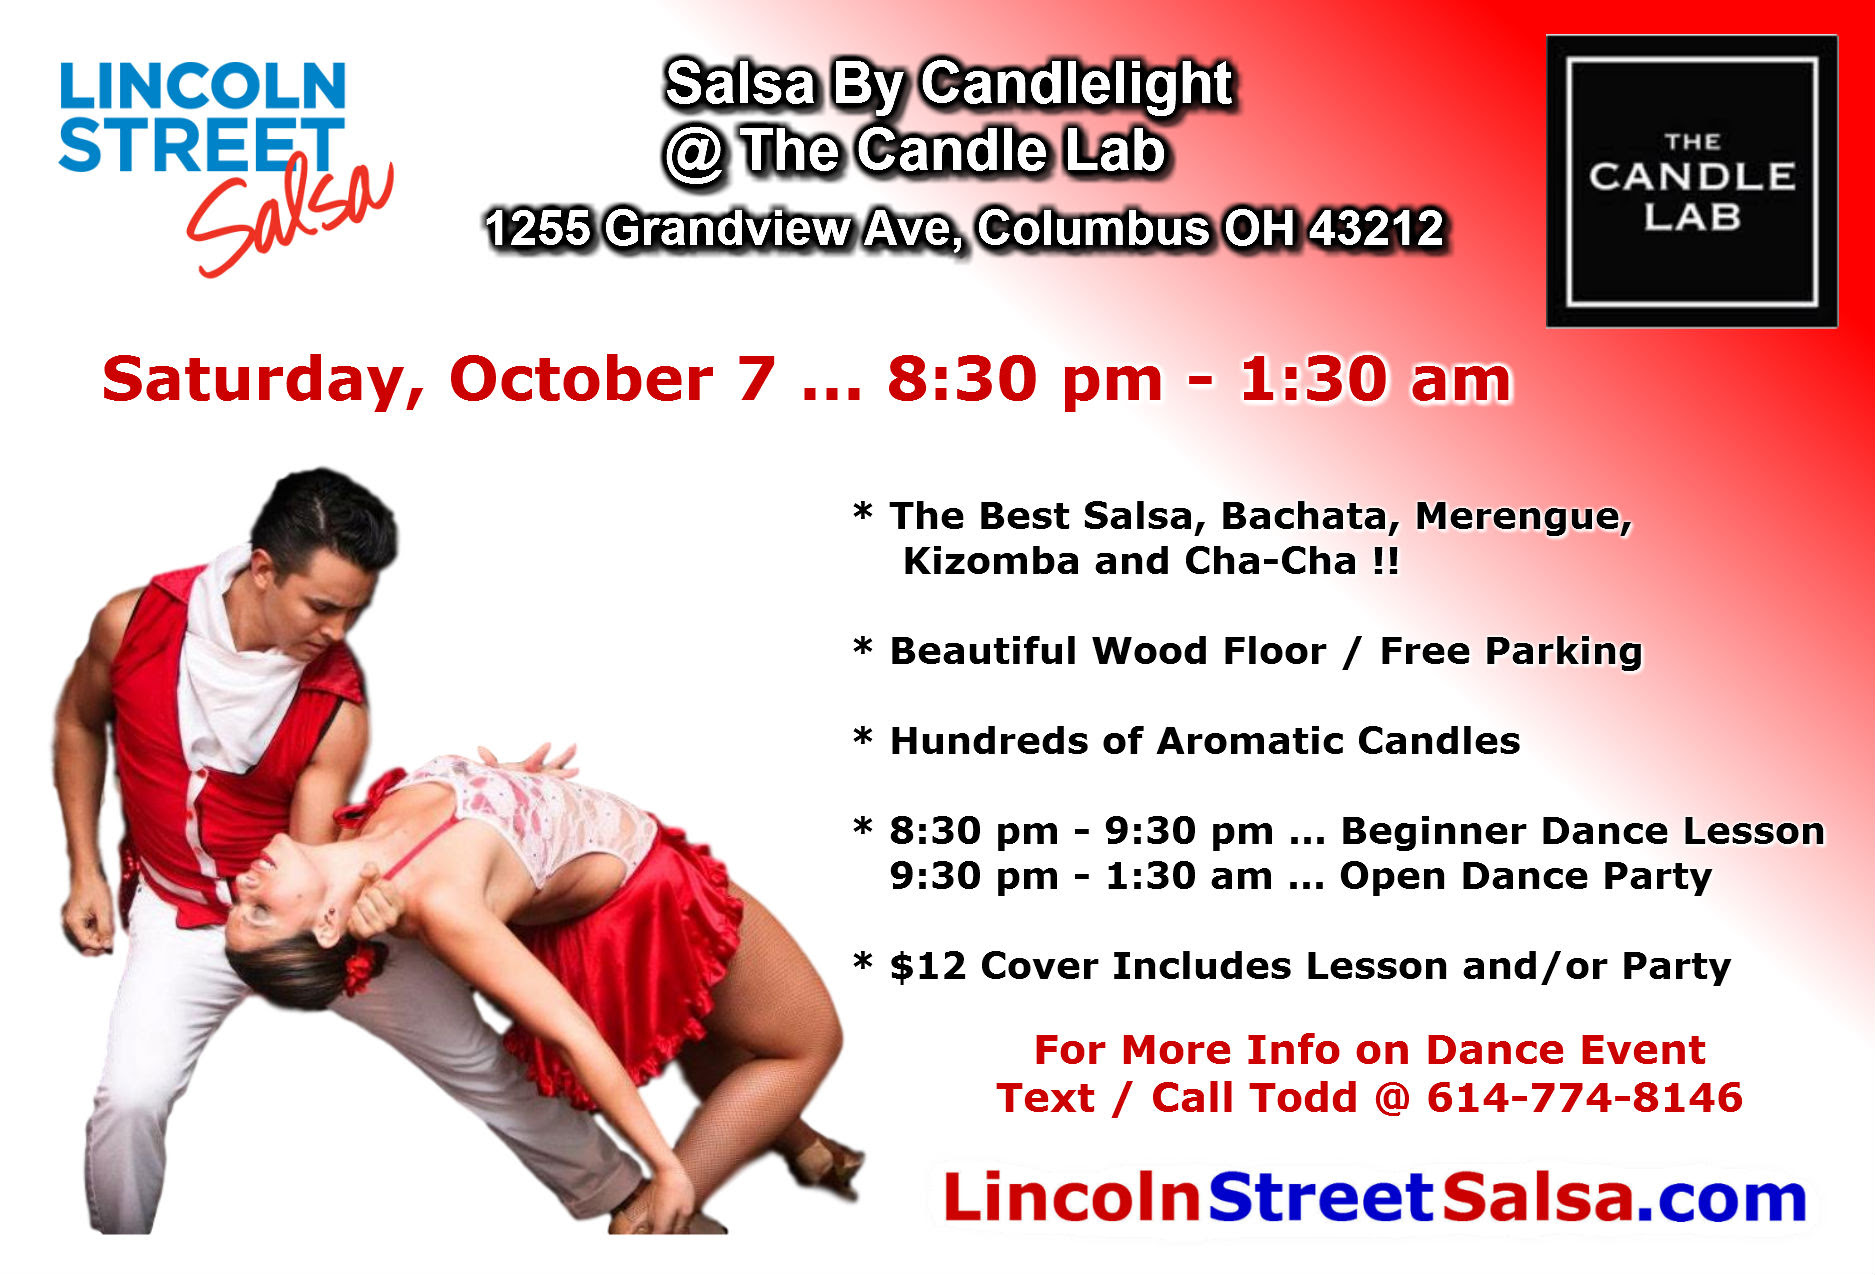 Salsa By Candlelight on Saturday, October 7 ...